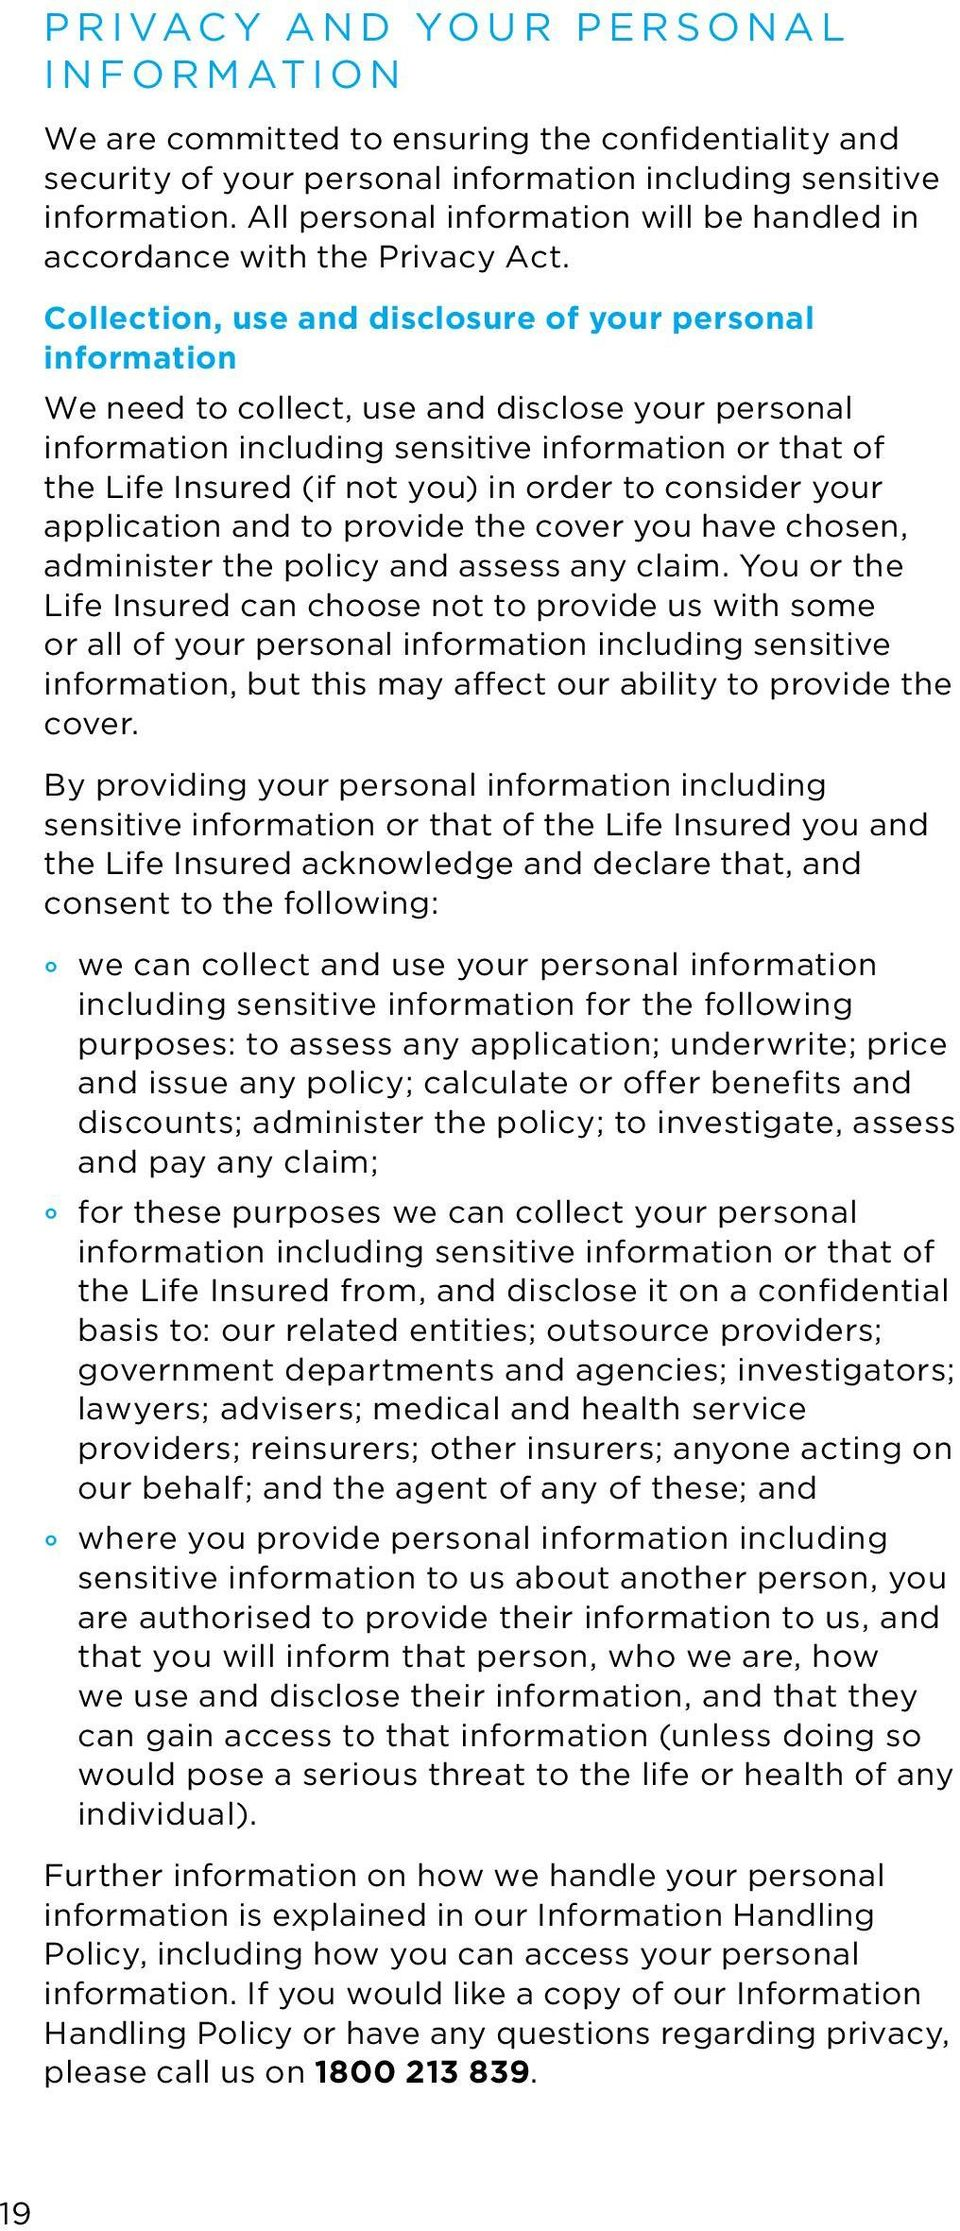 Collection, use and disclosure of your personal information We need to collect, use and disclose your personal information including sensitive information or that of the Life Insured (if not you) in